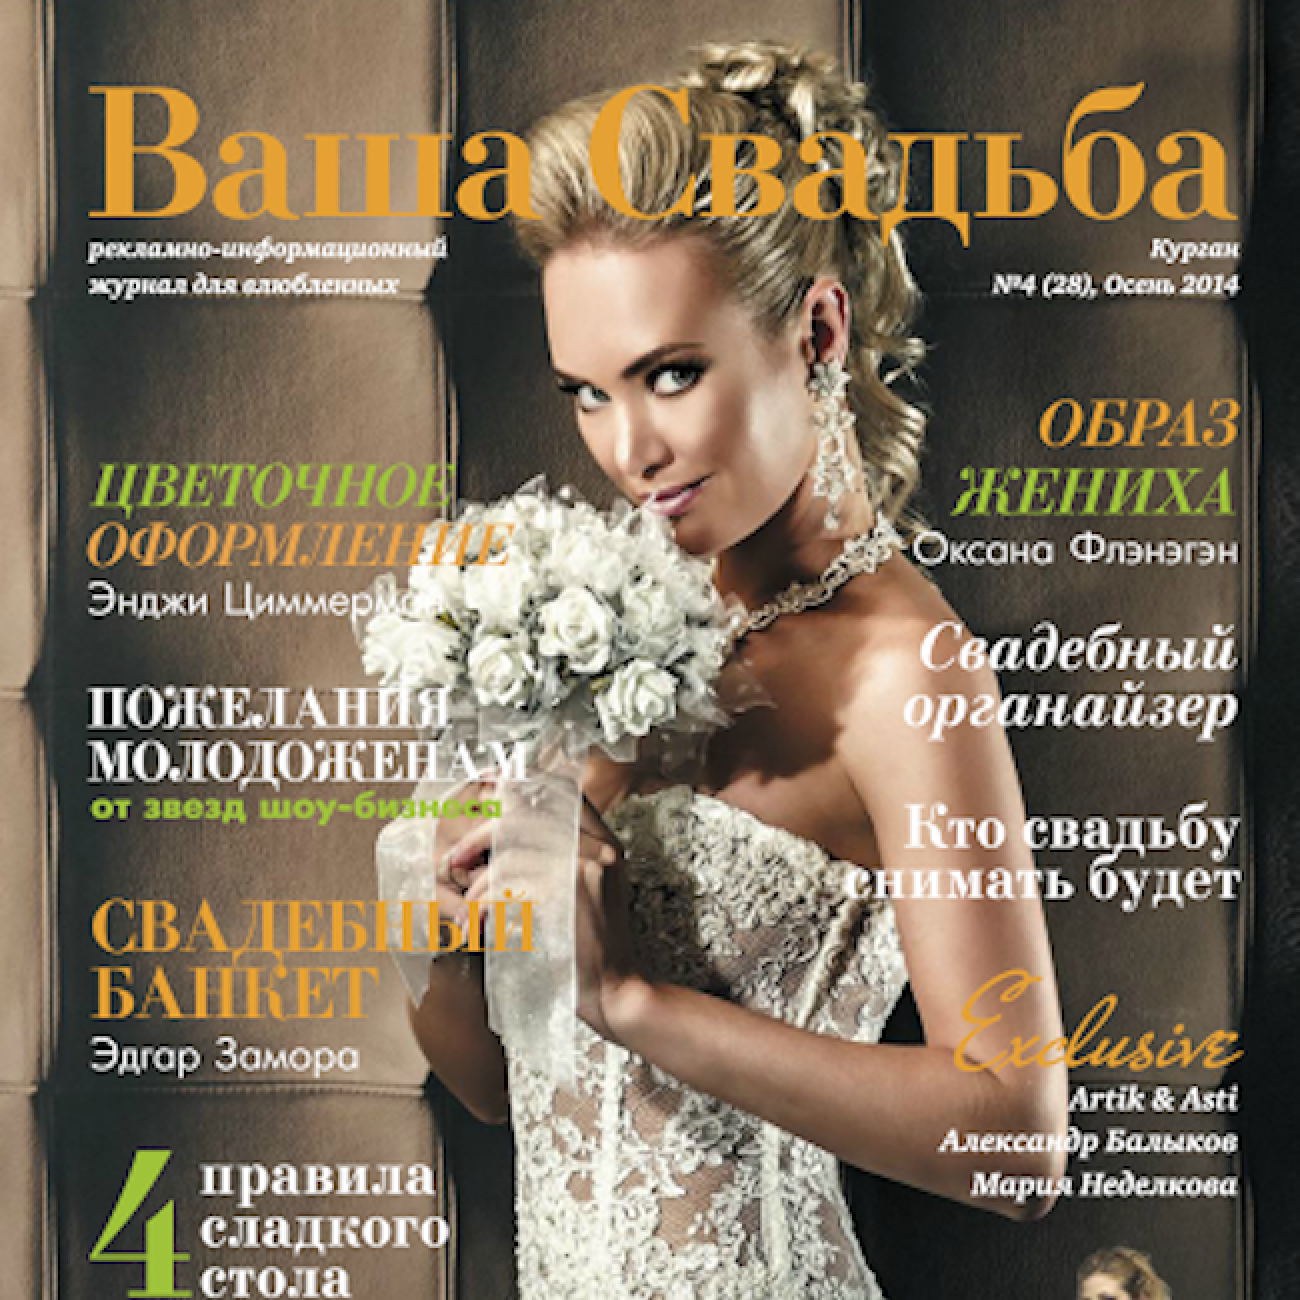 Featured On Russian 76